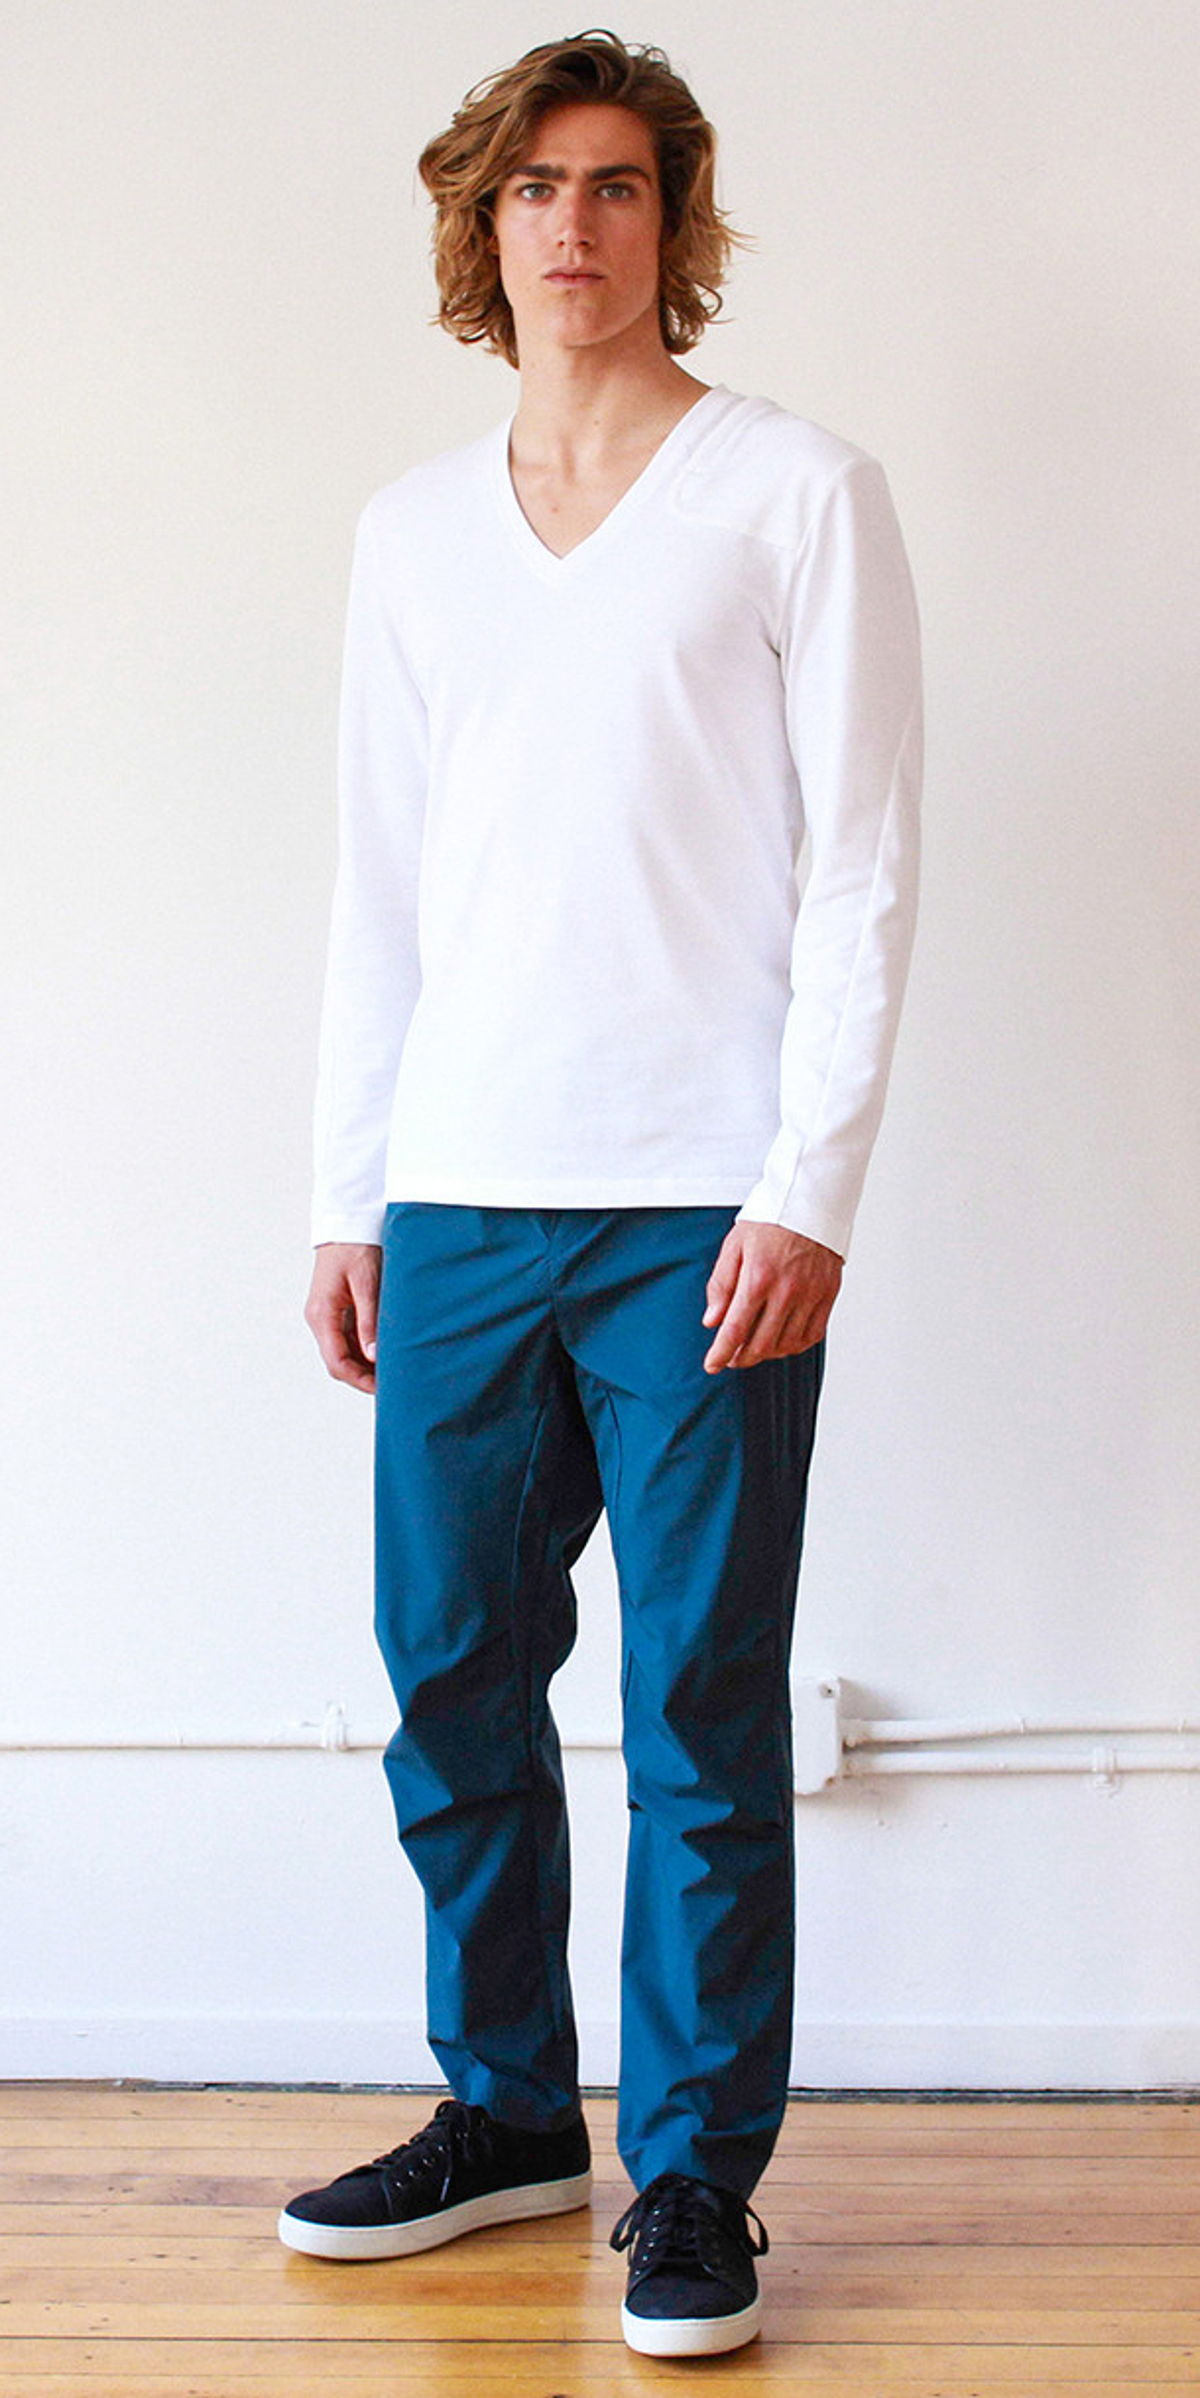 EXUBERANT – EVERYDAY ULTRALIGHT TRAVEL TO OFFICE PANT